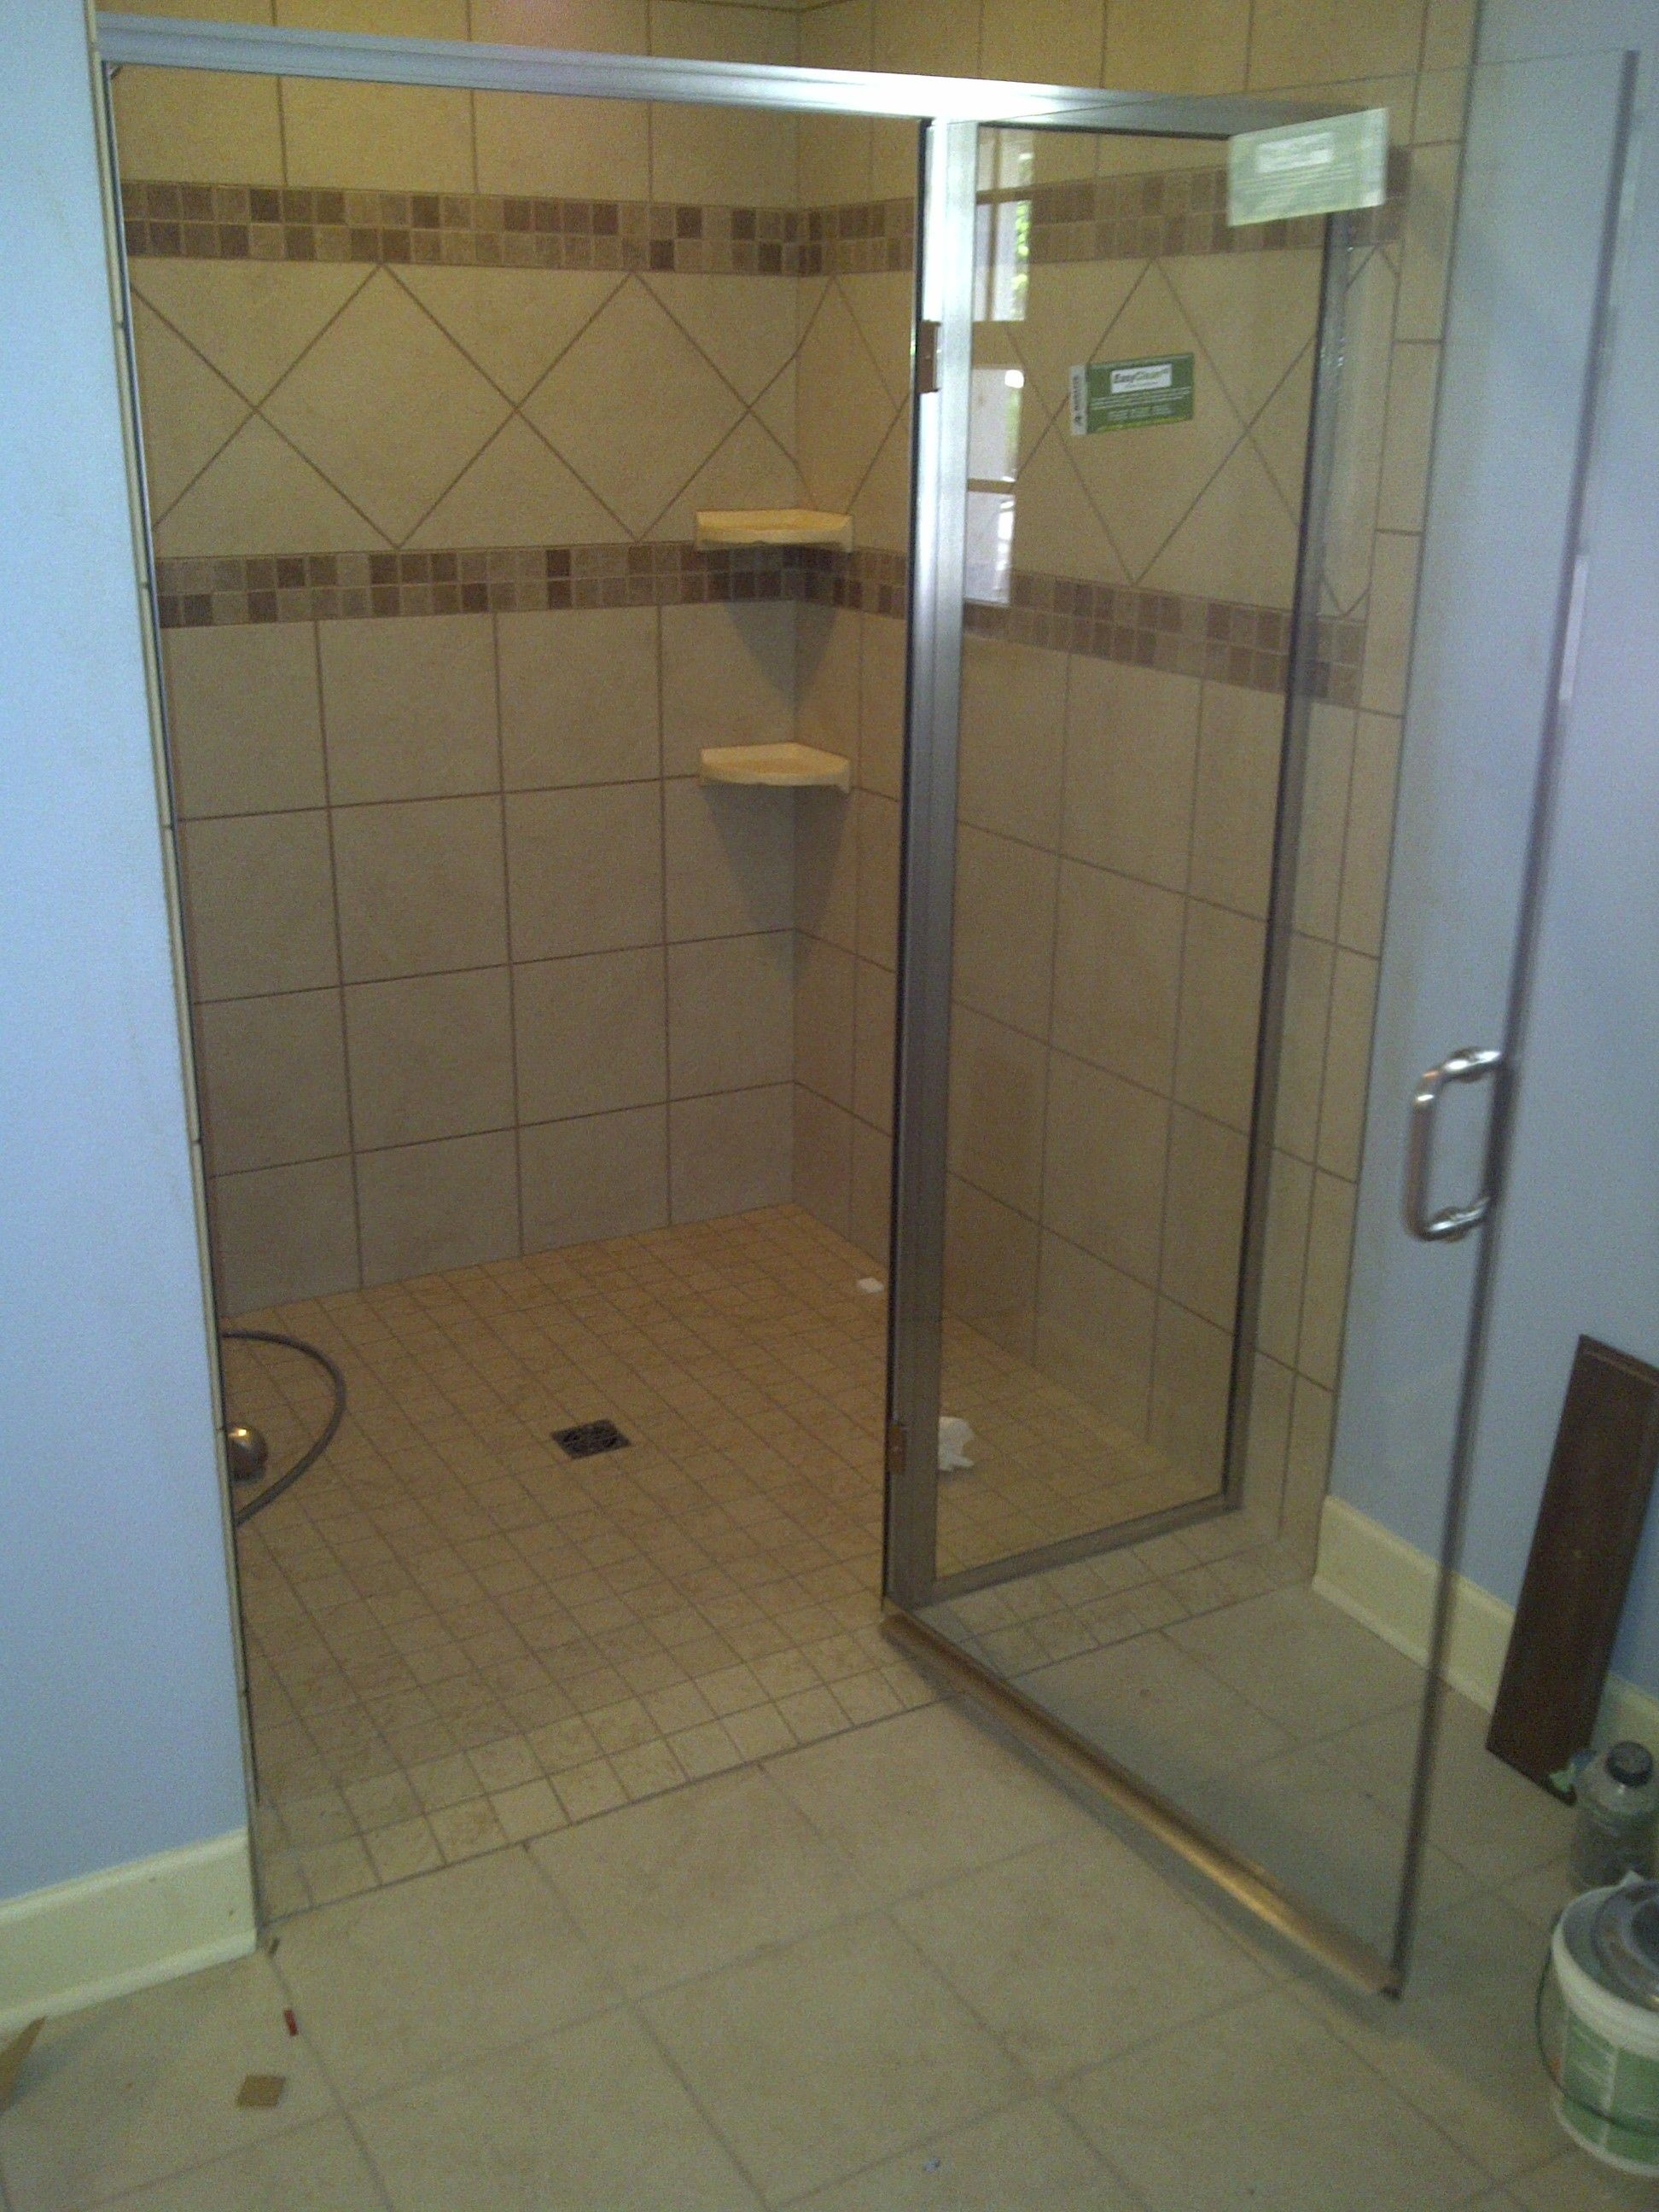 accessible compliant requirements ada floor small wheelchair sinks bathroom remodel cost plans ideas handicap dimensions